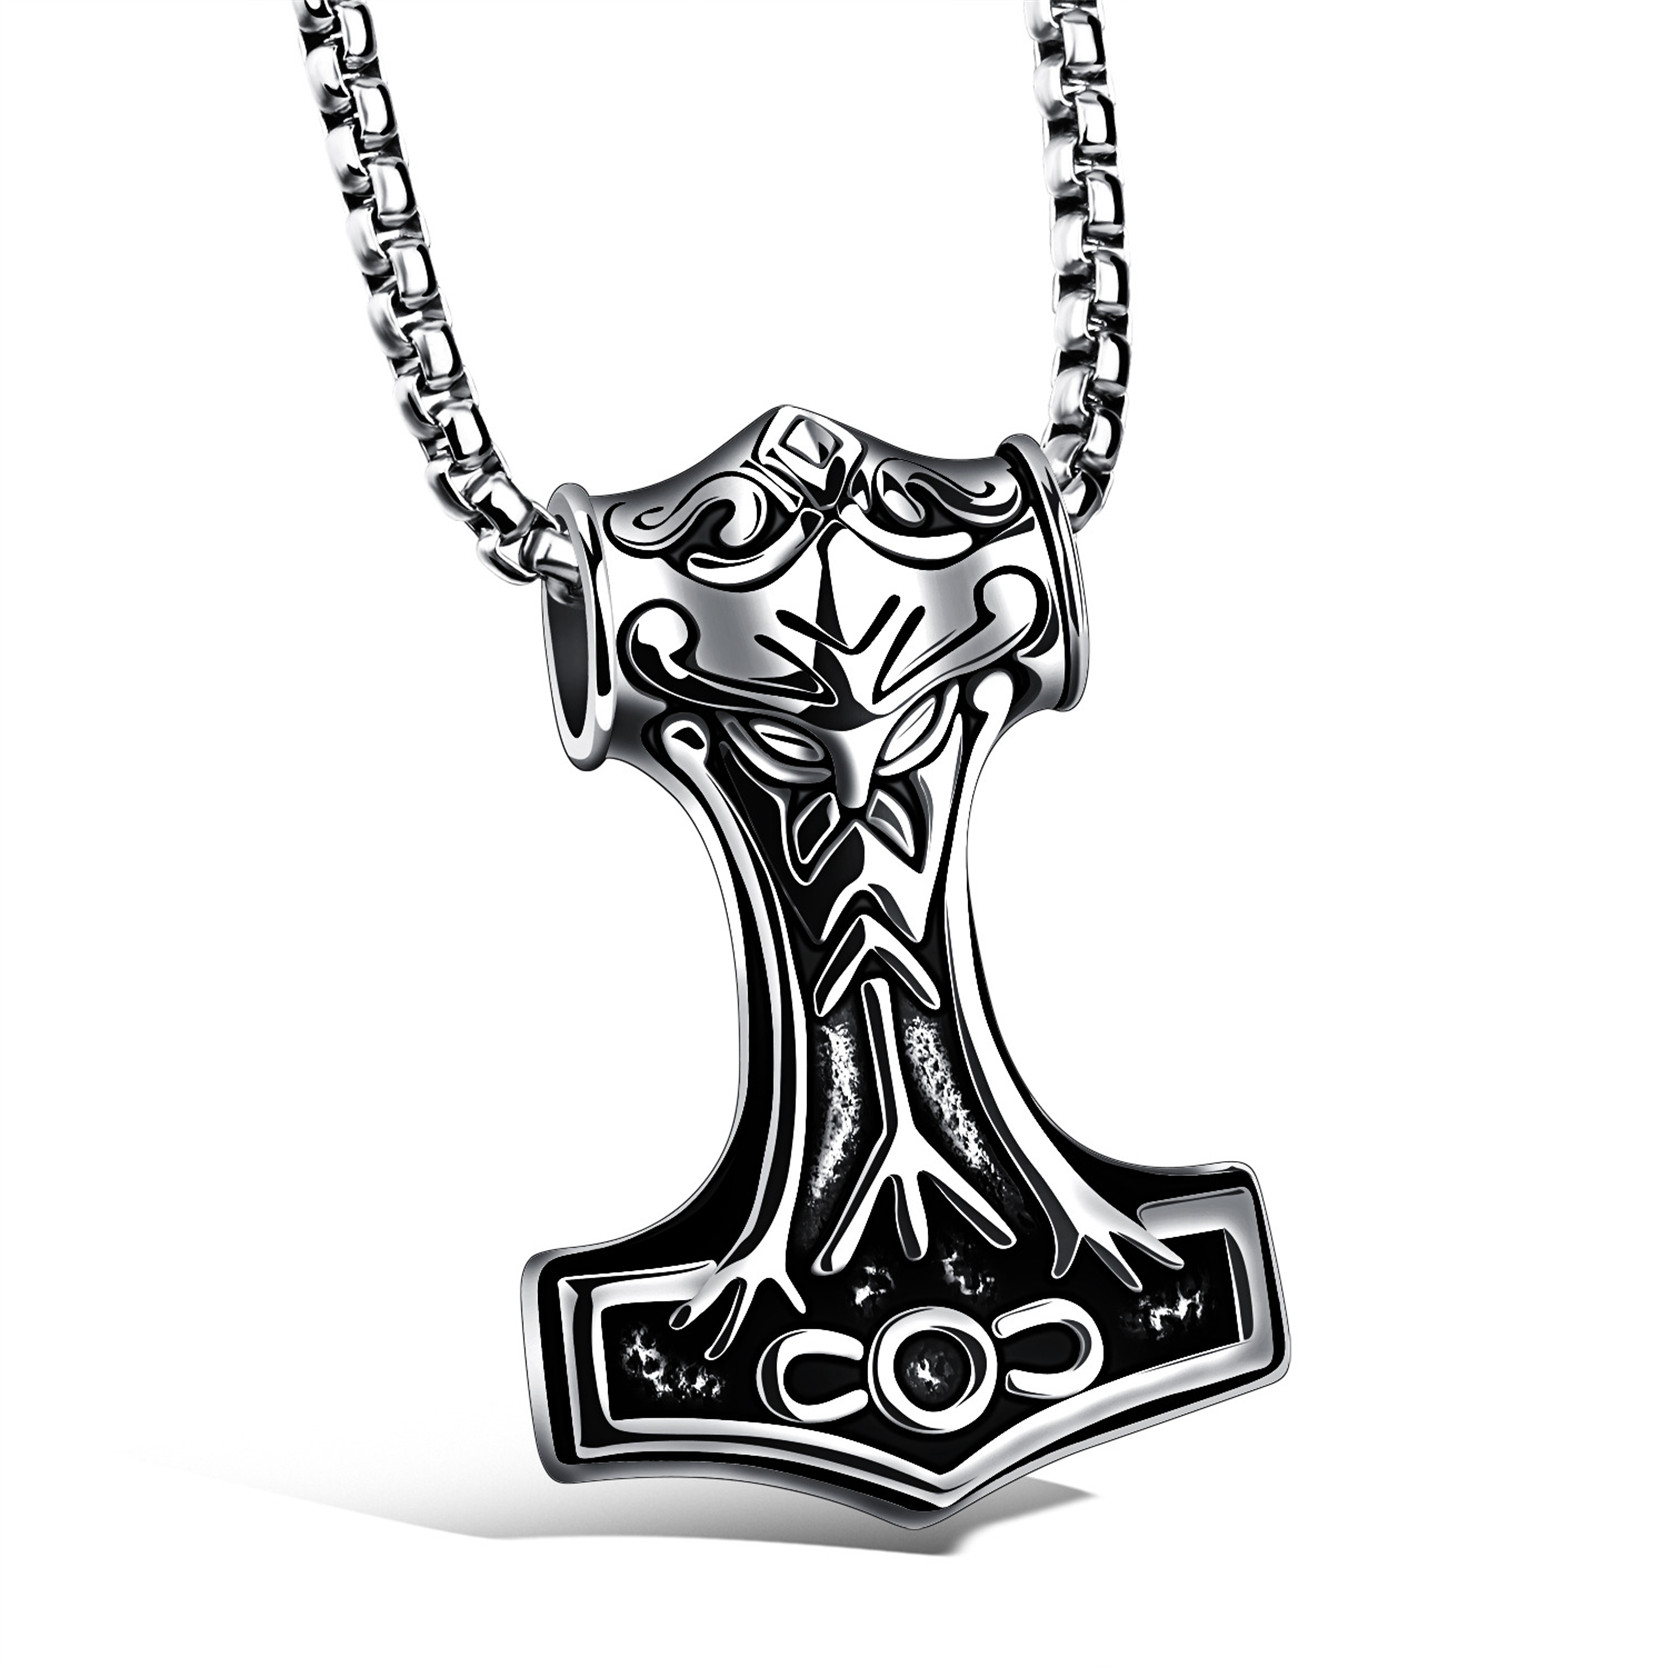 jiayiqi 2017 punk men men stainless steel thor hammer  click here to buy now jiayiqi 2017 punk men stainless steel thor hammer pendant necklace rock style statement necklace jewelry accessories